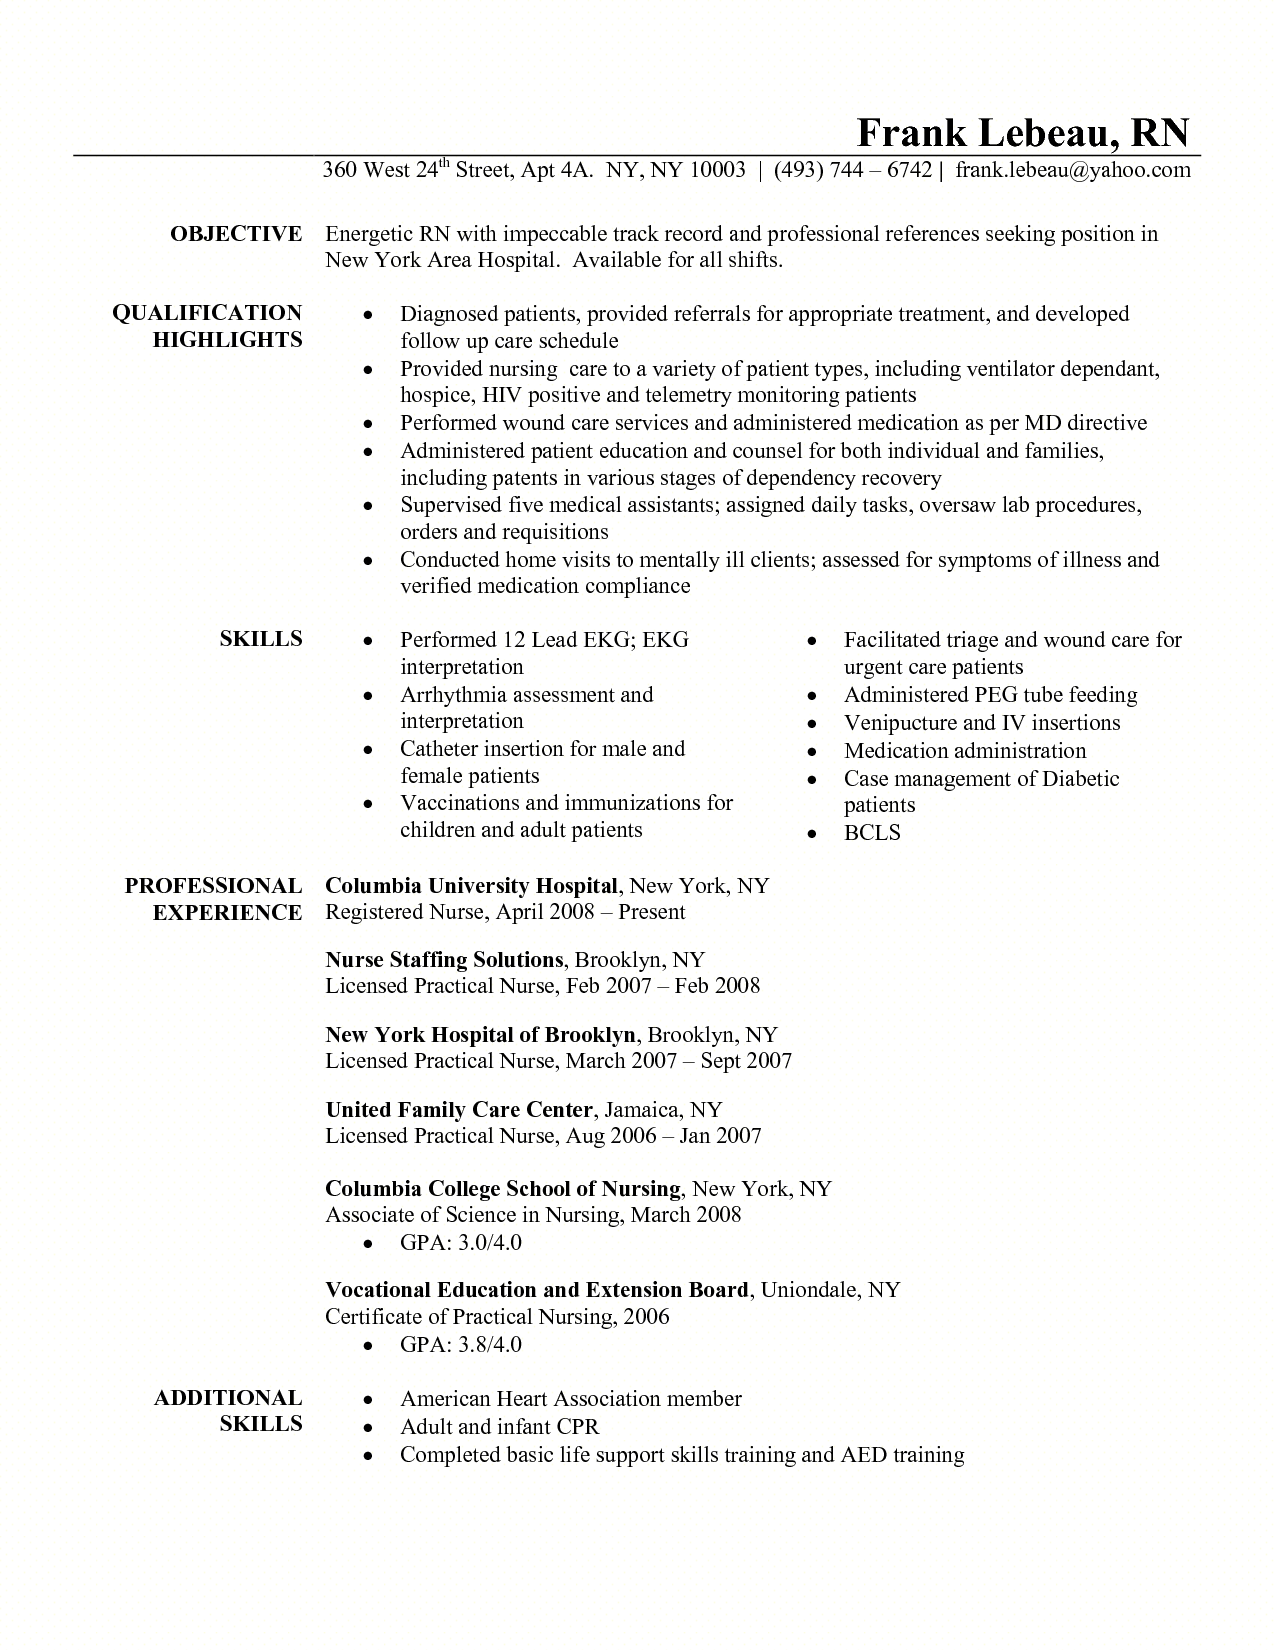 Captivating Delivery Nurse Sample Resume 11 Labor And Delivery Nurse Resume Resume  Labor And Delivery Nurse . Intended For Registered Nurse Resume Objective